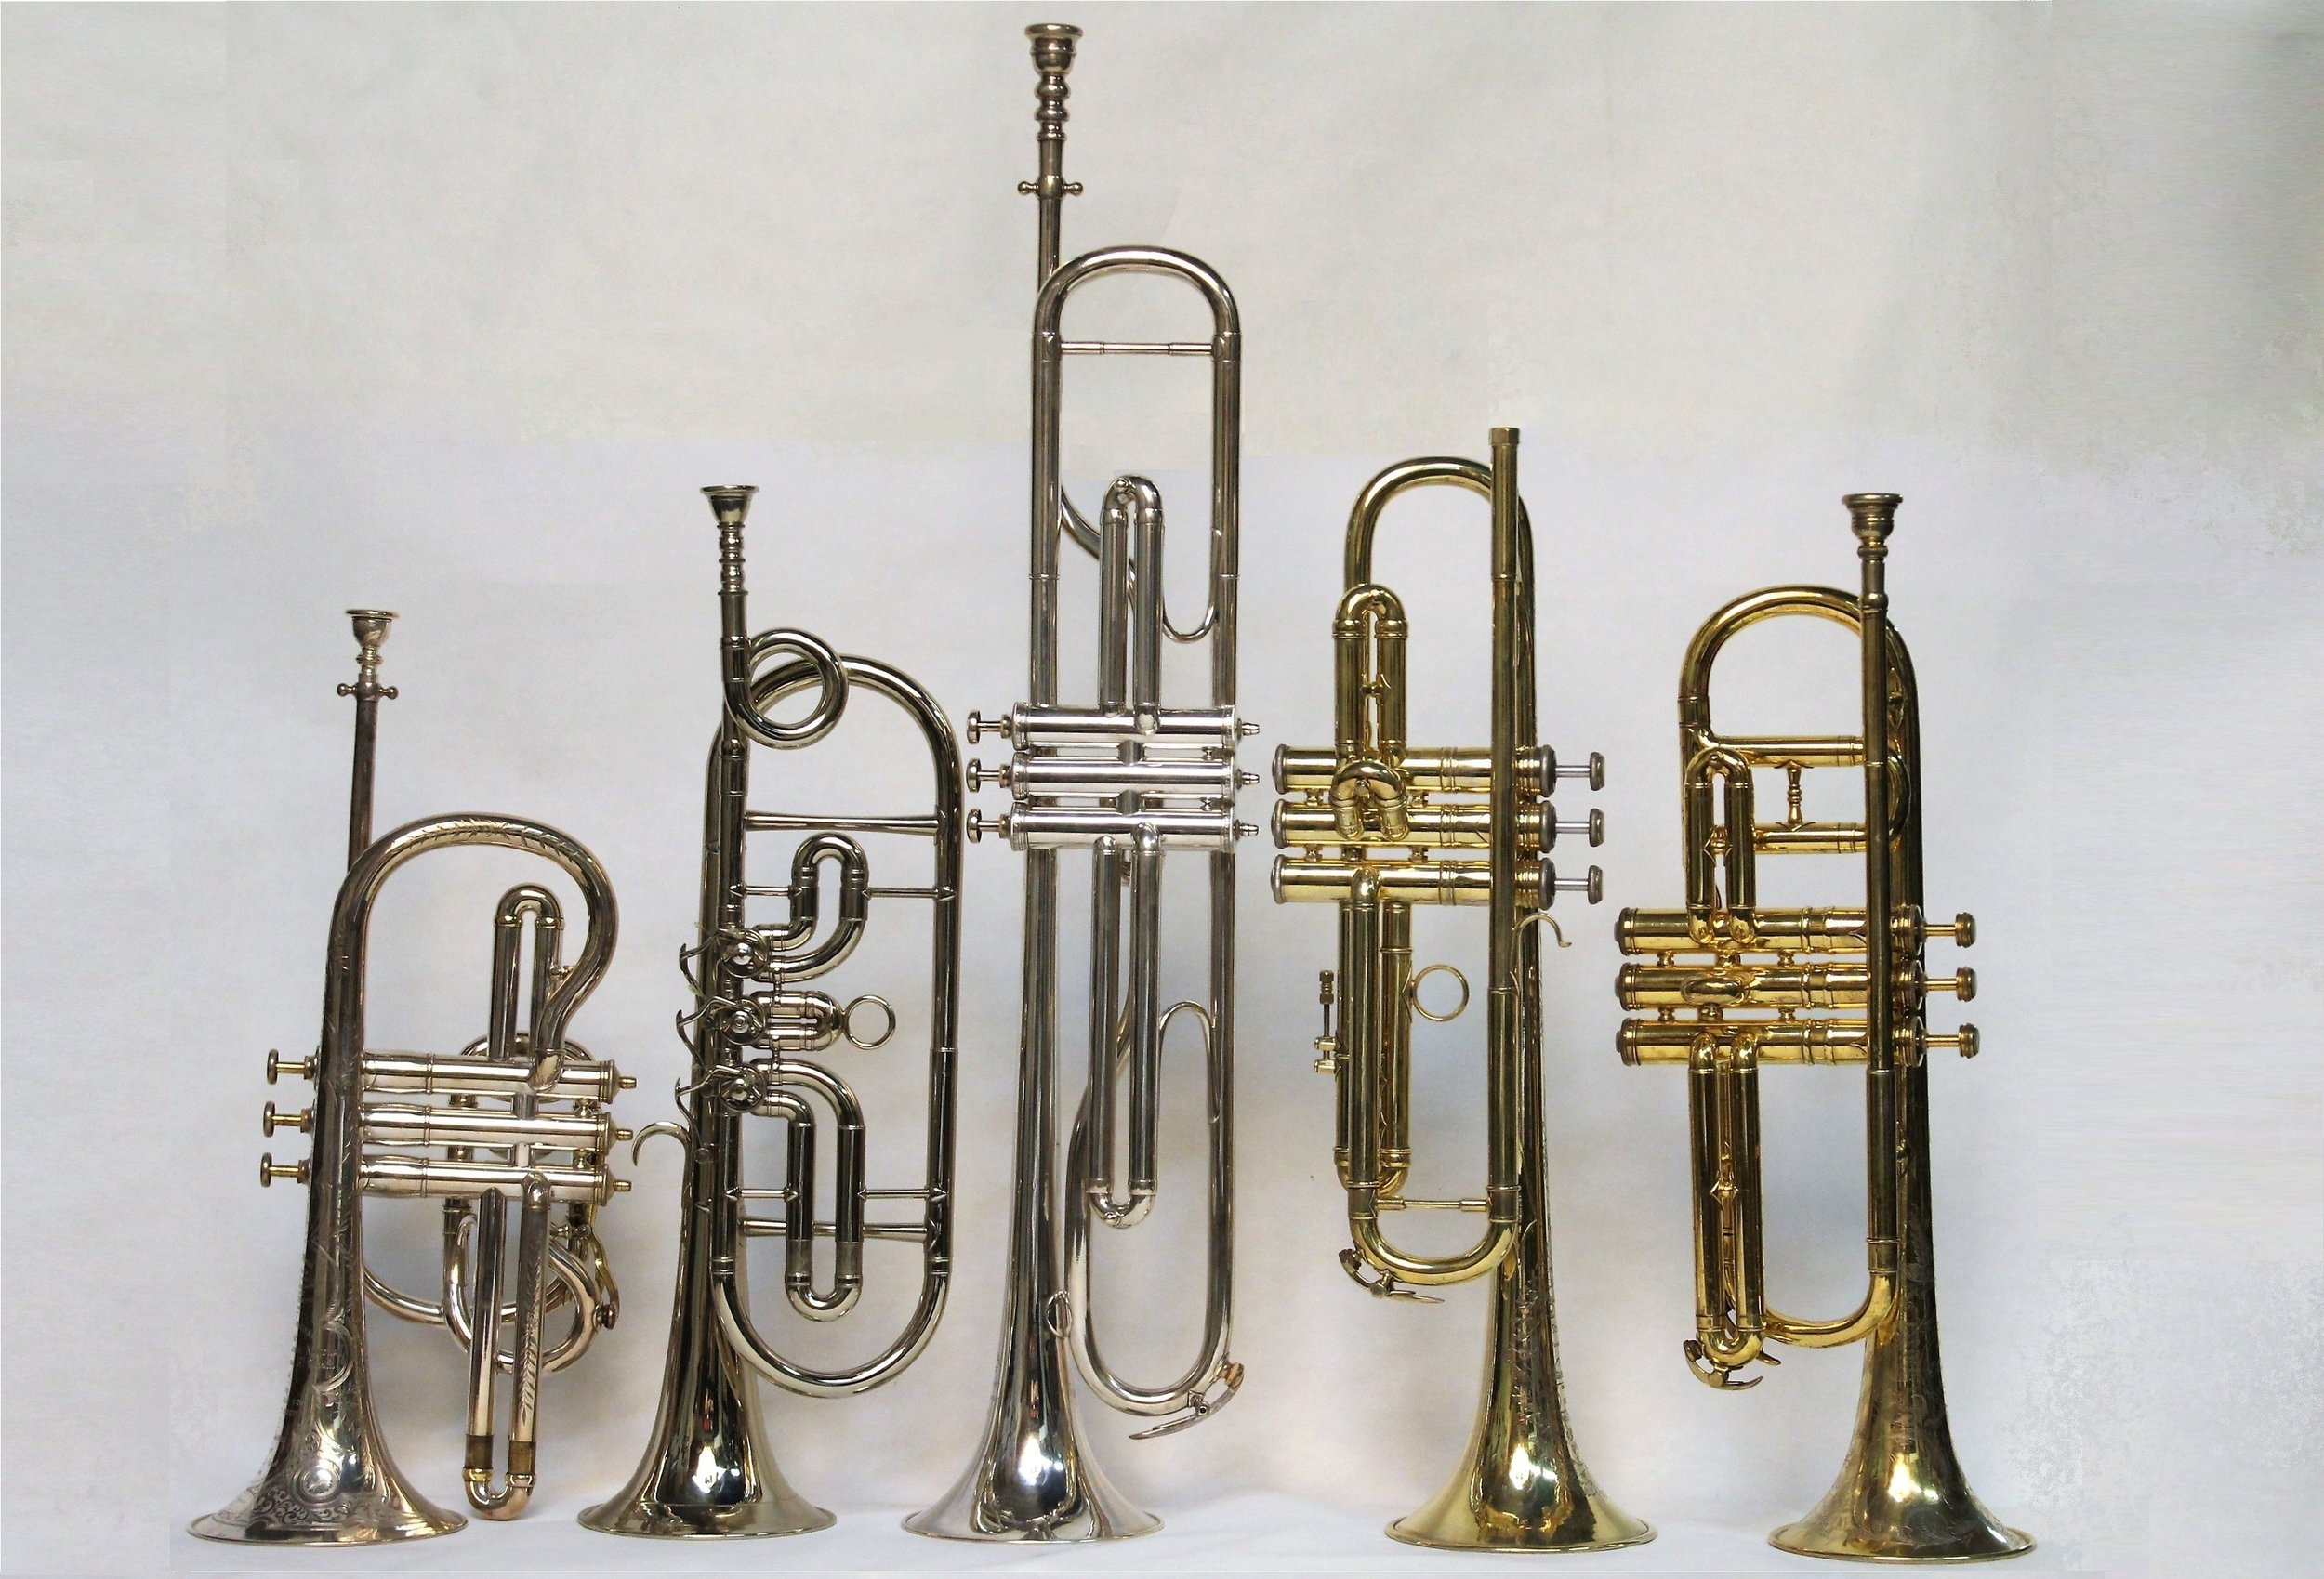 Difference Between Trumpets and Cornets